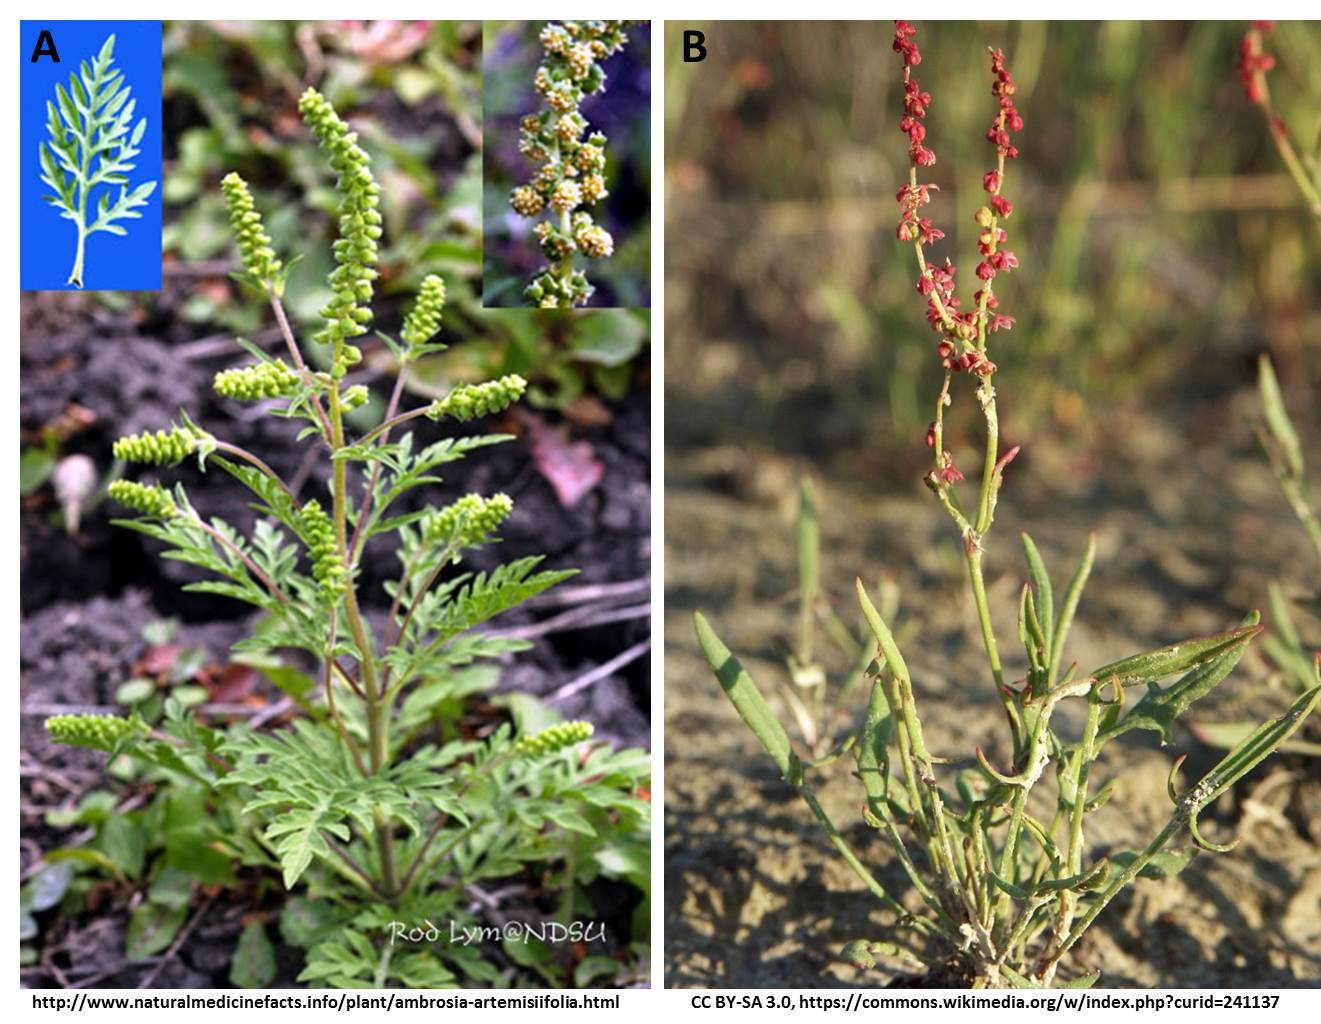 Images of A) ragweed and B) sheep sorrel.